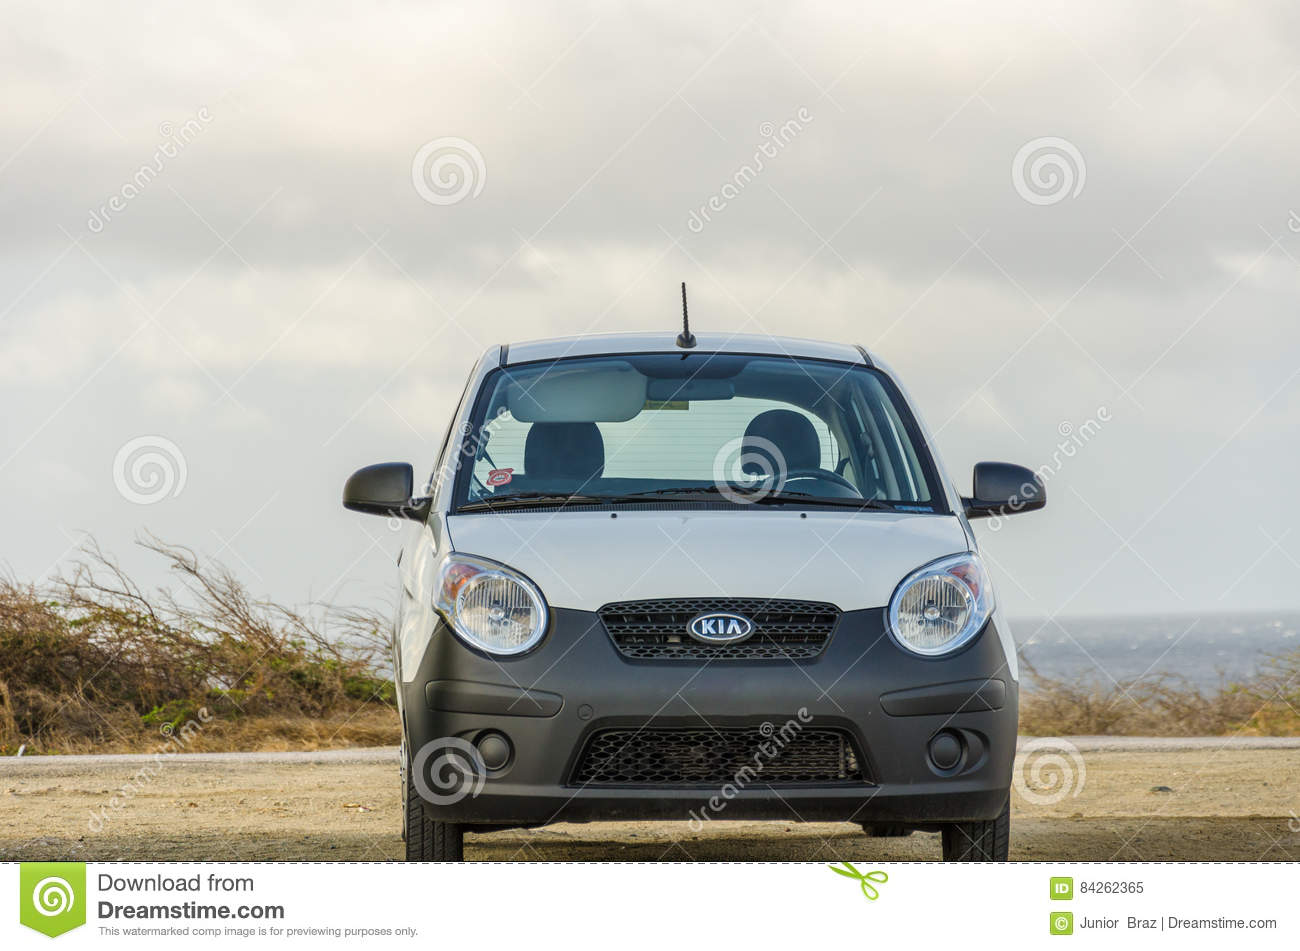 Awesome Download White Old Kia Picanto City Car On Desert Editorial Image   Image  Of Caribbean,